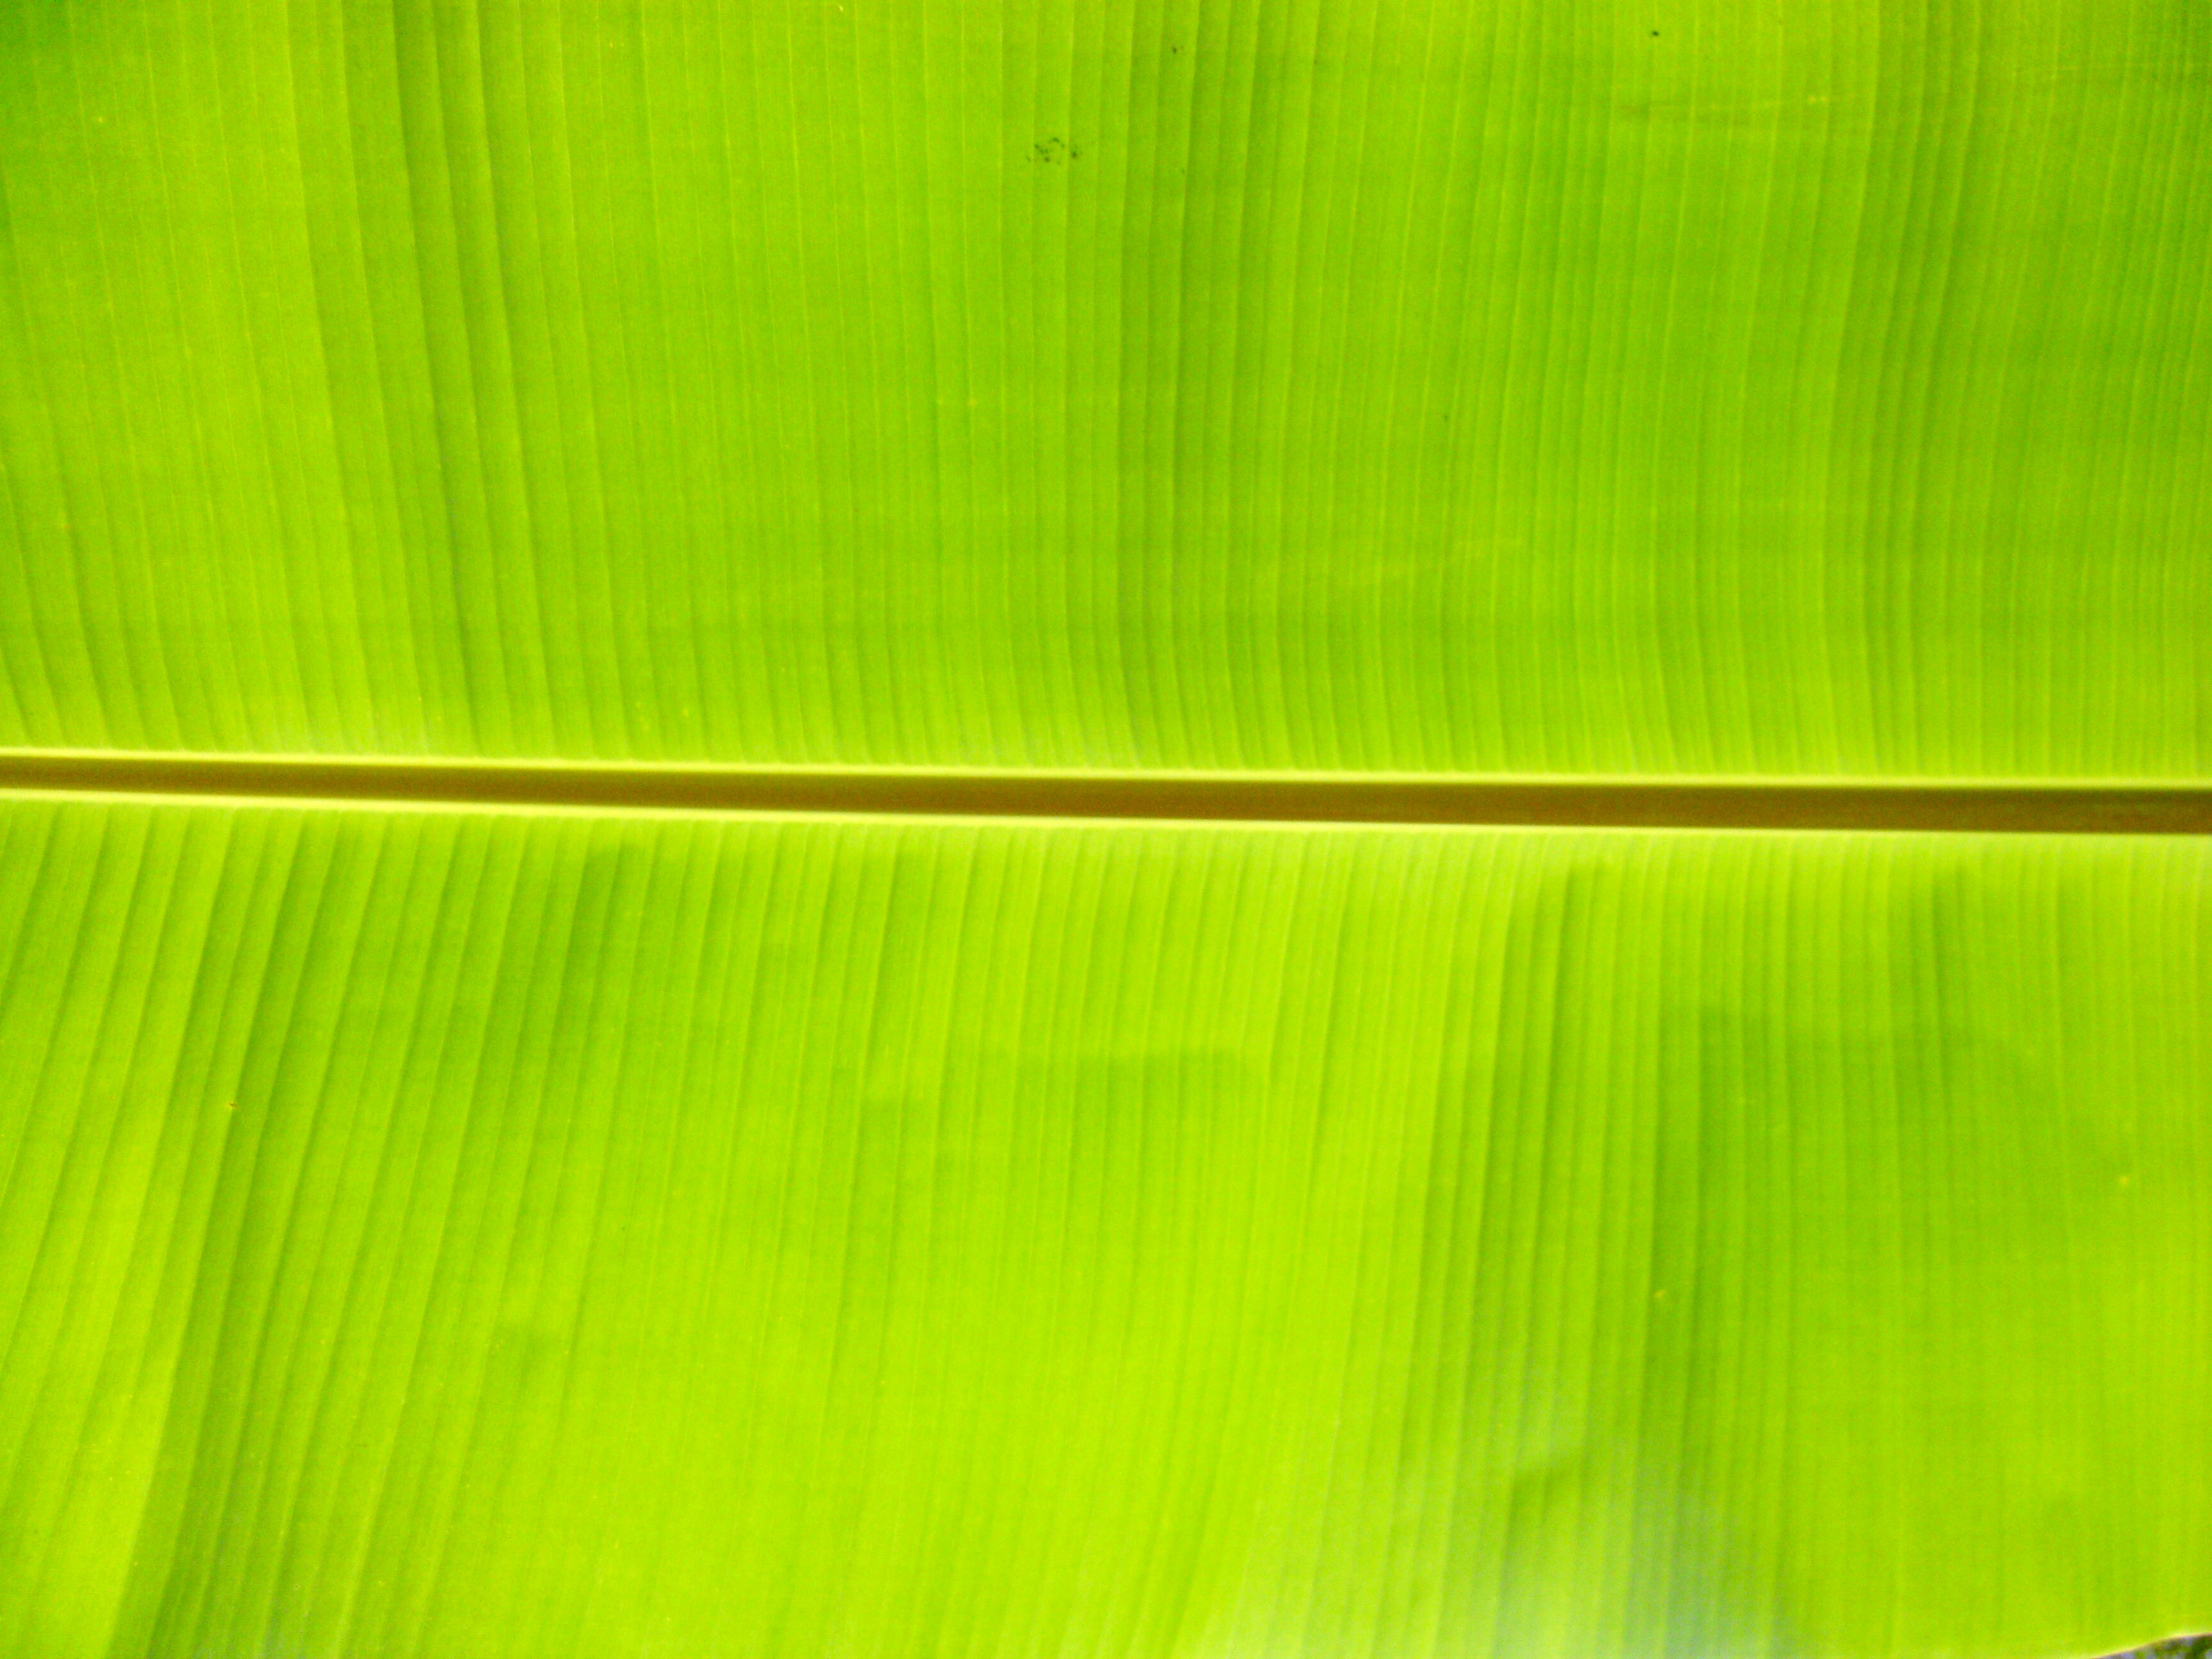 Bengali Quotes Wallpapers Free Download Banana Leaf Backgrounds Pixelstalk Net